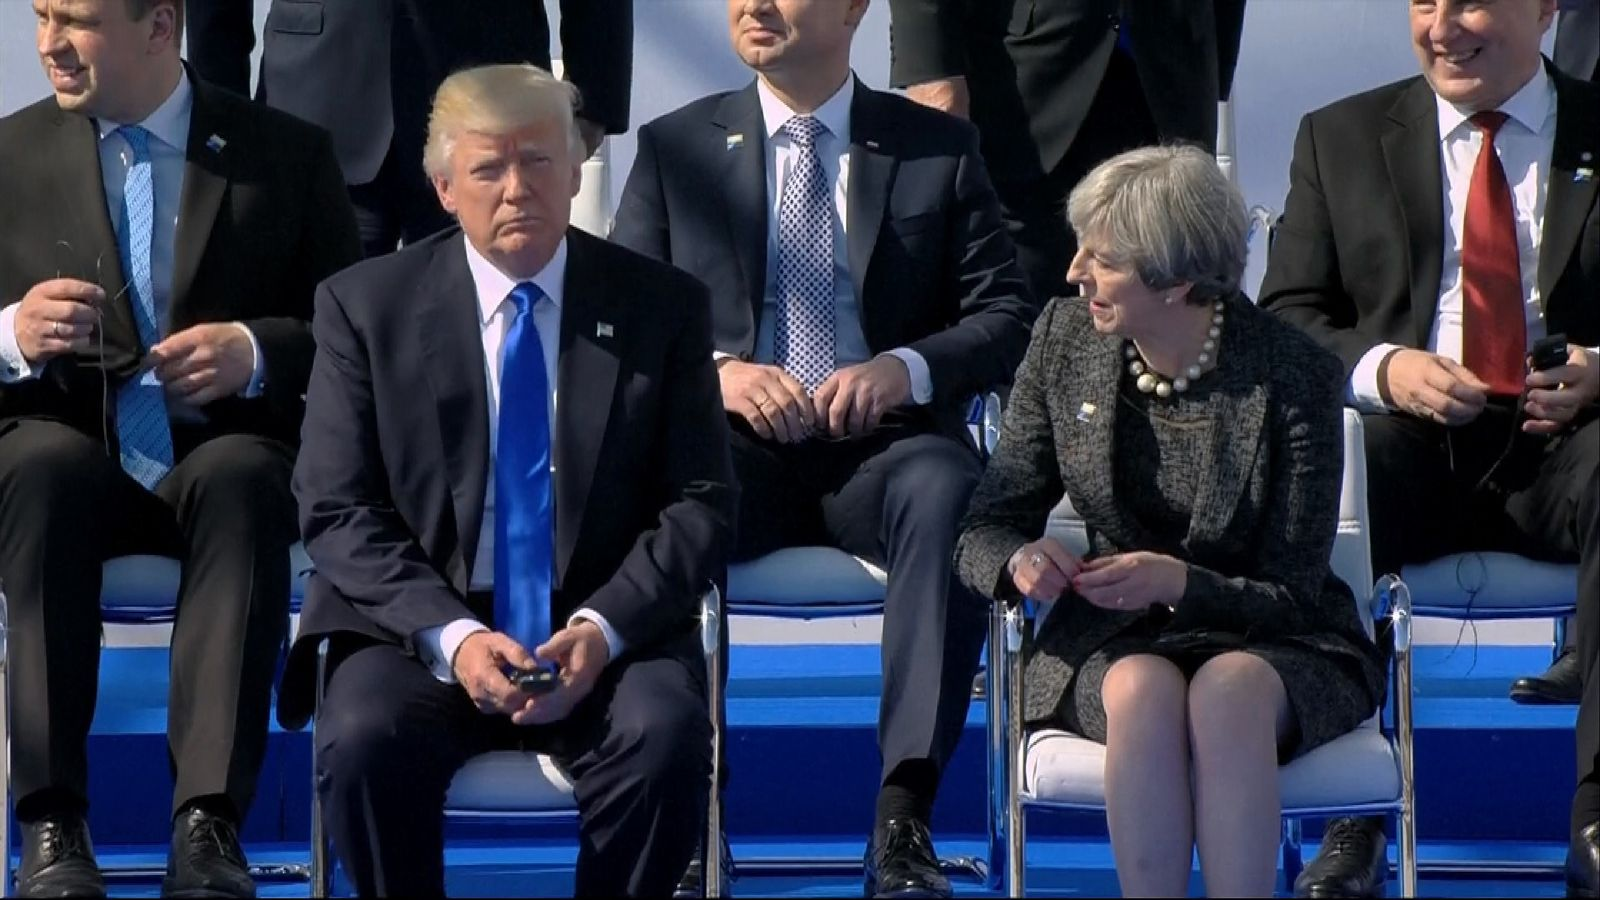 British PM May to Challenge Trump Over Intelligence Leaks